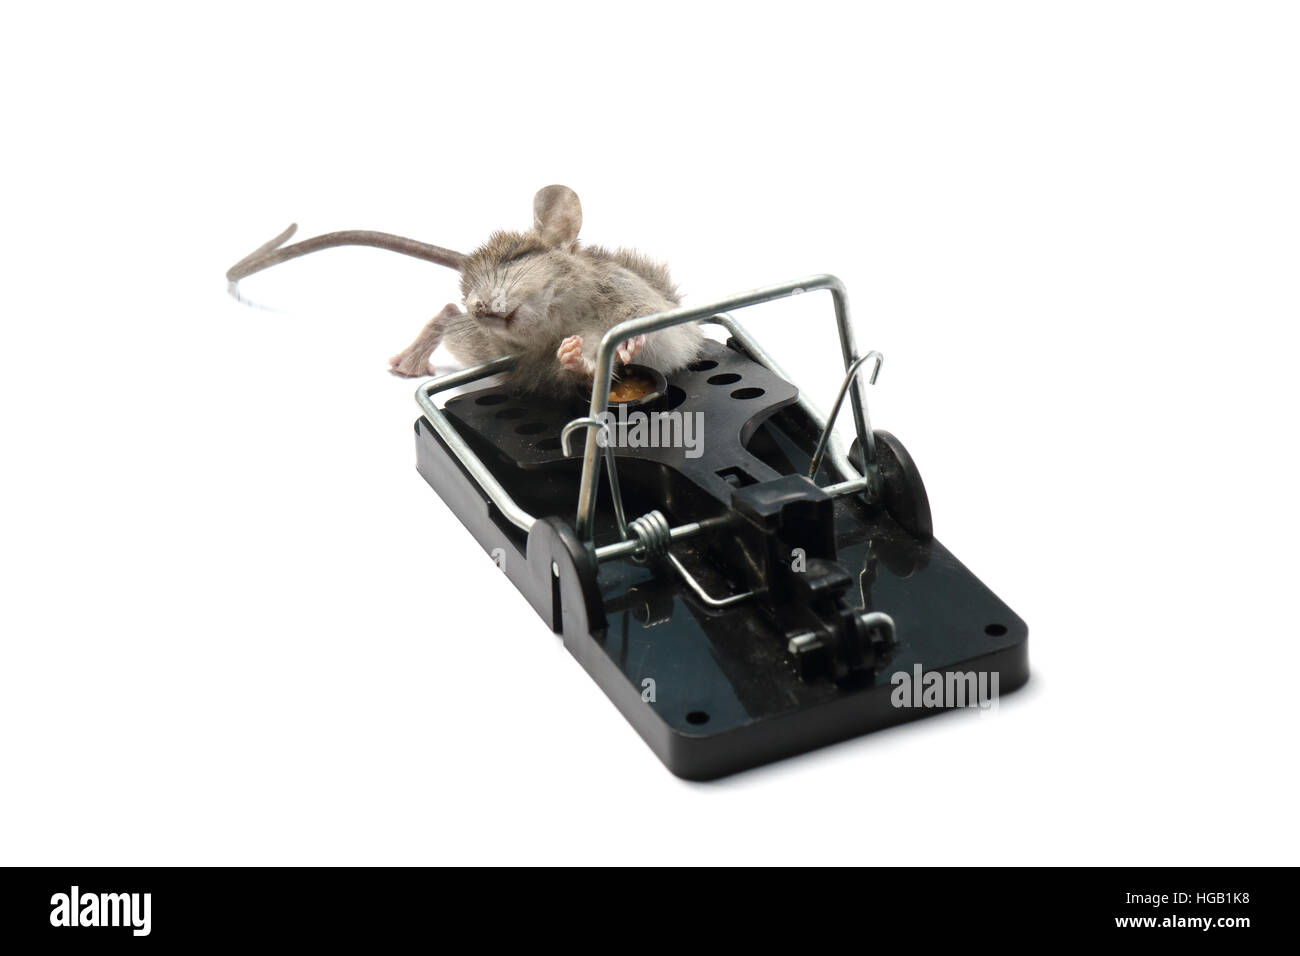 House mouse, mus musculus, caught and killed in a spring trap. Photographed on a white background and prepared for - Stock Image